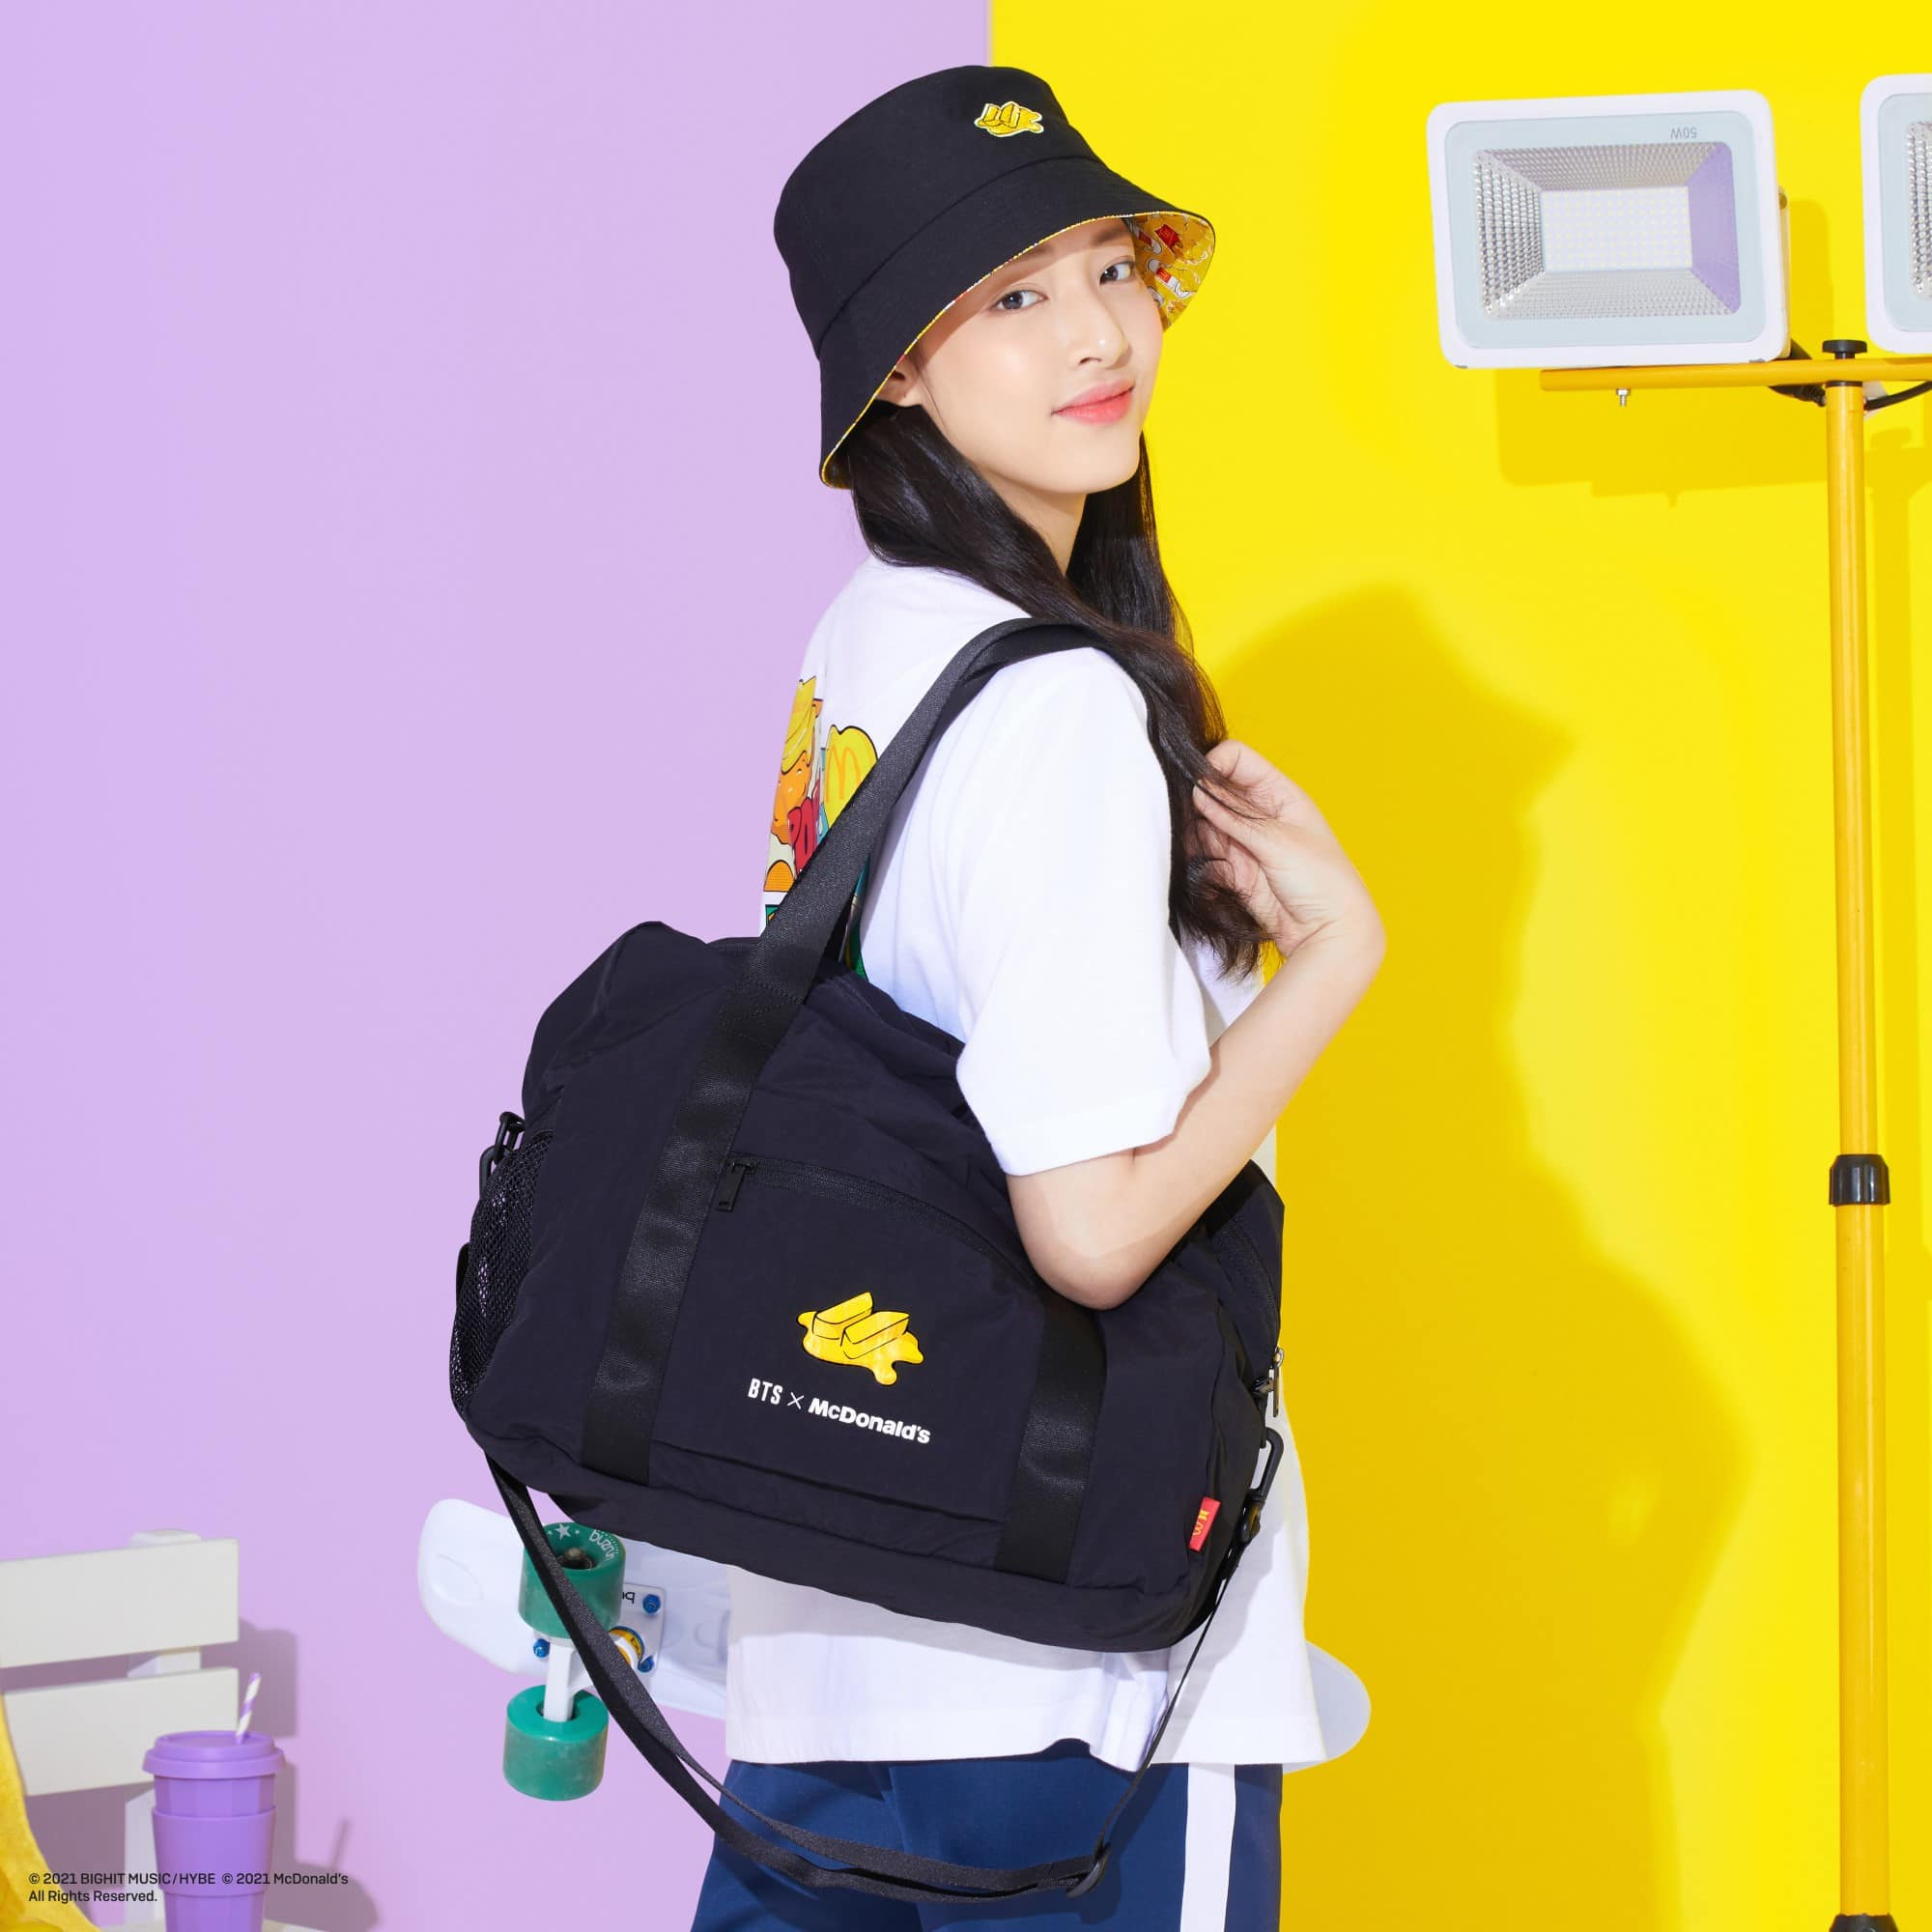 BTS x McDonald's collaboration continues with two new merch lines 18